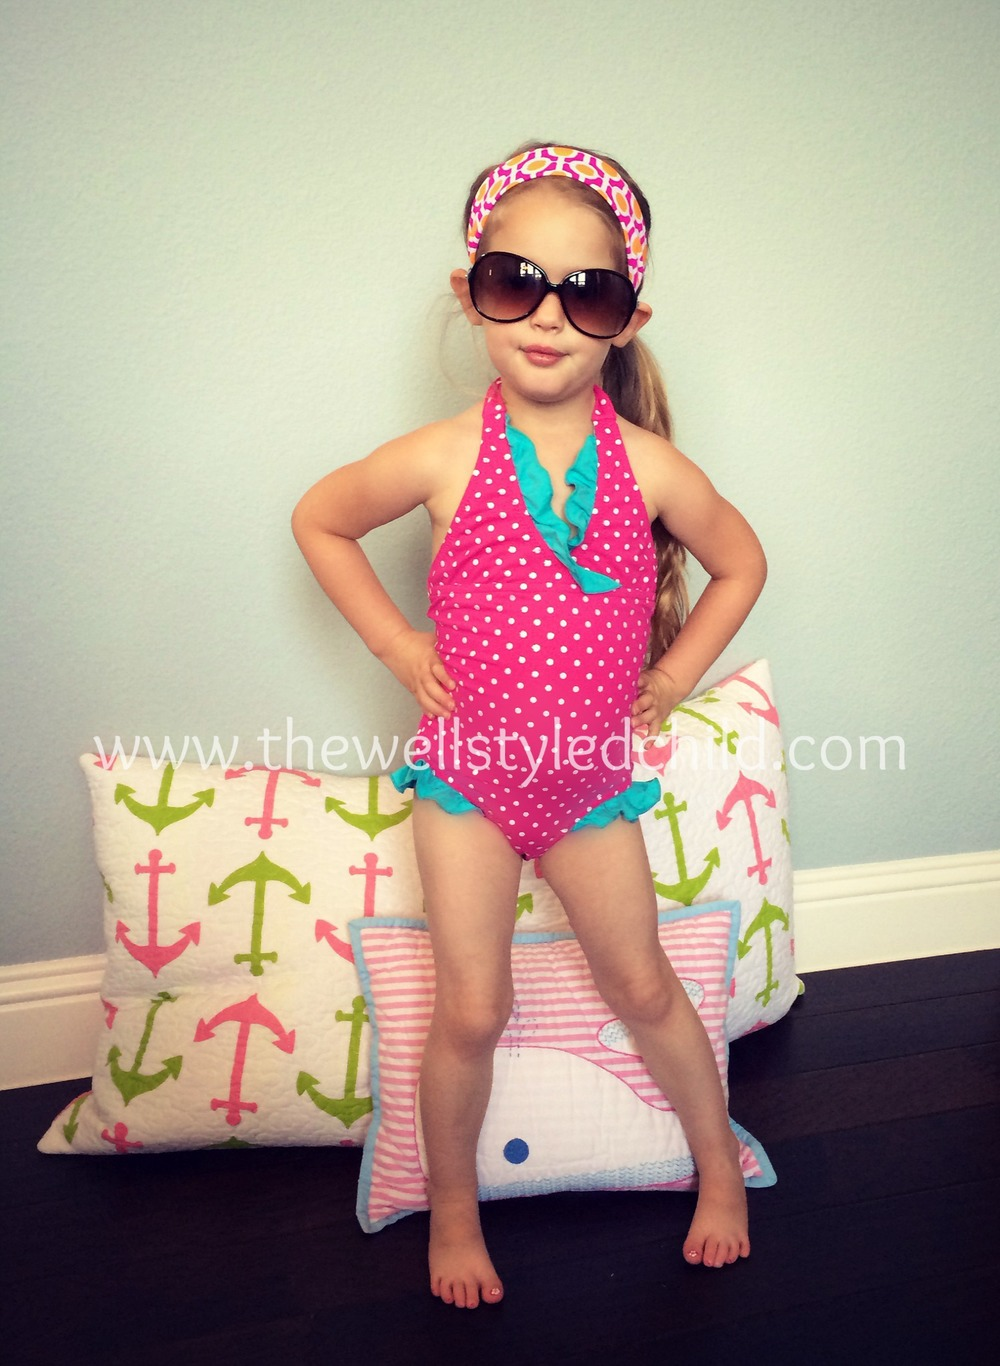 Garnet Hill Kids Ruffle Trimmed Halter One Piece  Garnet Hill Kids Swim Headband  Sunglasses:  Island in the SUn